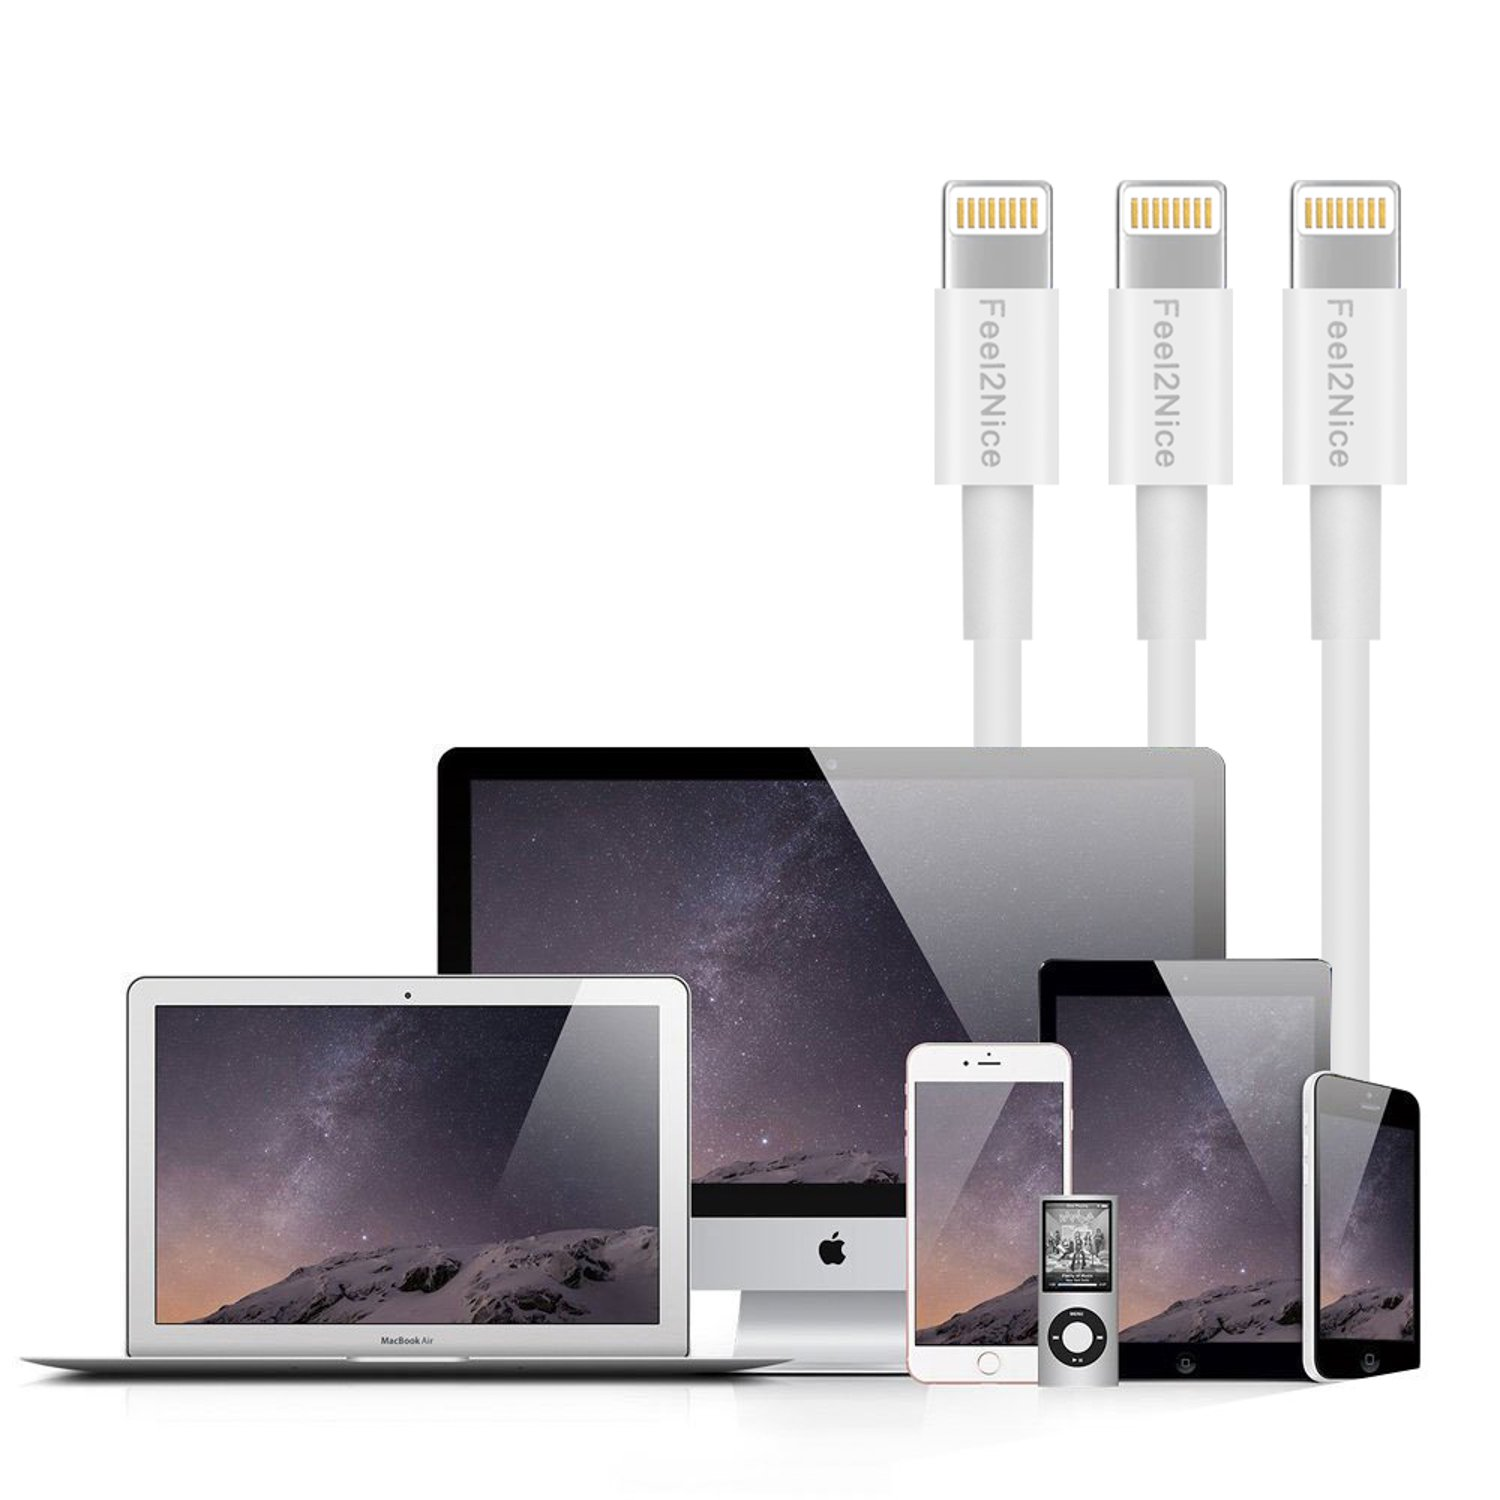 Feel2Nice Short Lightning Cable 10 pack 7-Inch Iphone Cord Data Sync USB Portable fast charge for iPhone X 8/8 Plus/7/7 plus/6s/6s plus/6/6 plus 5/5s/5c/Multi-Port Charging Station,White by Feel2Nice (Image #8)